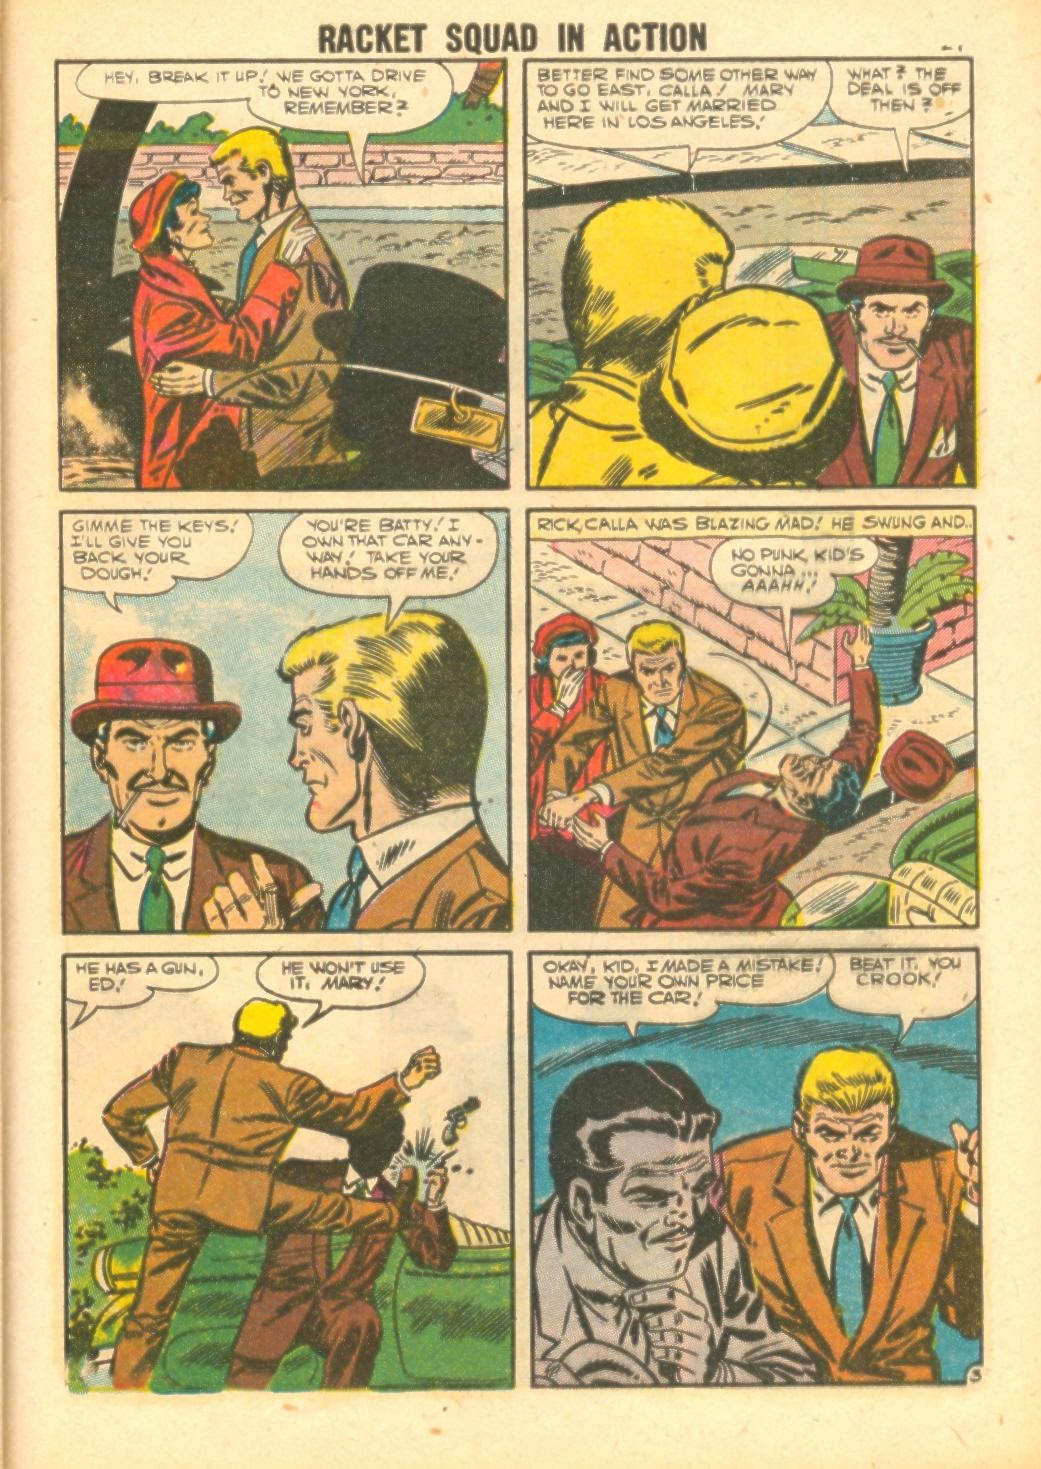 Read online Racket Squad in Action comic -  Issue #26 - 29